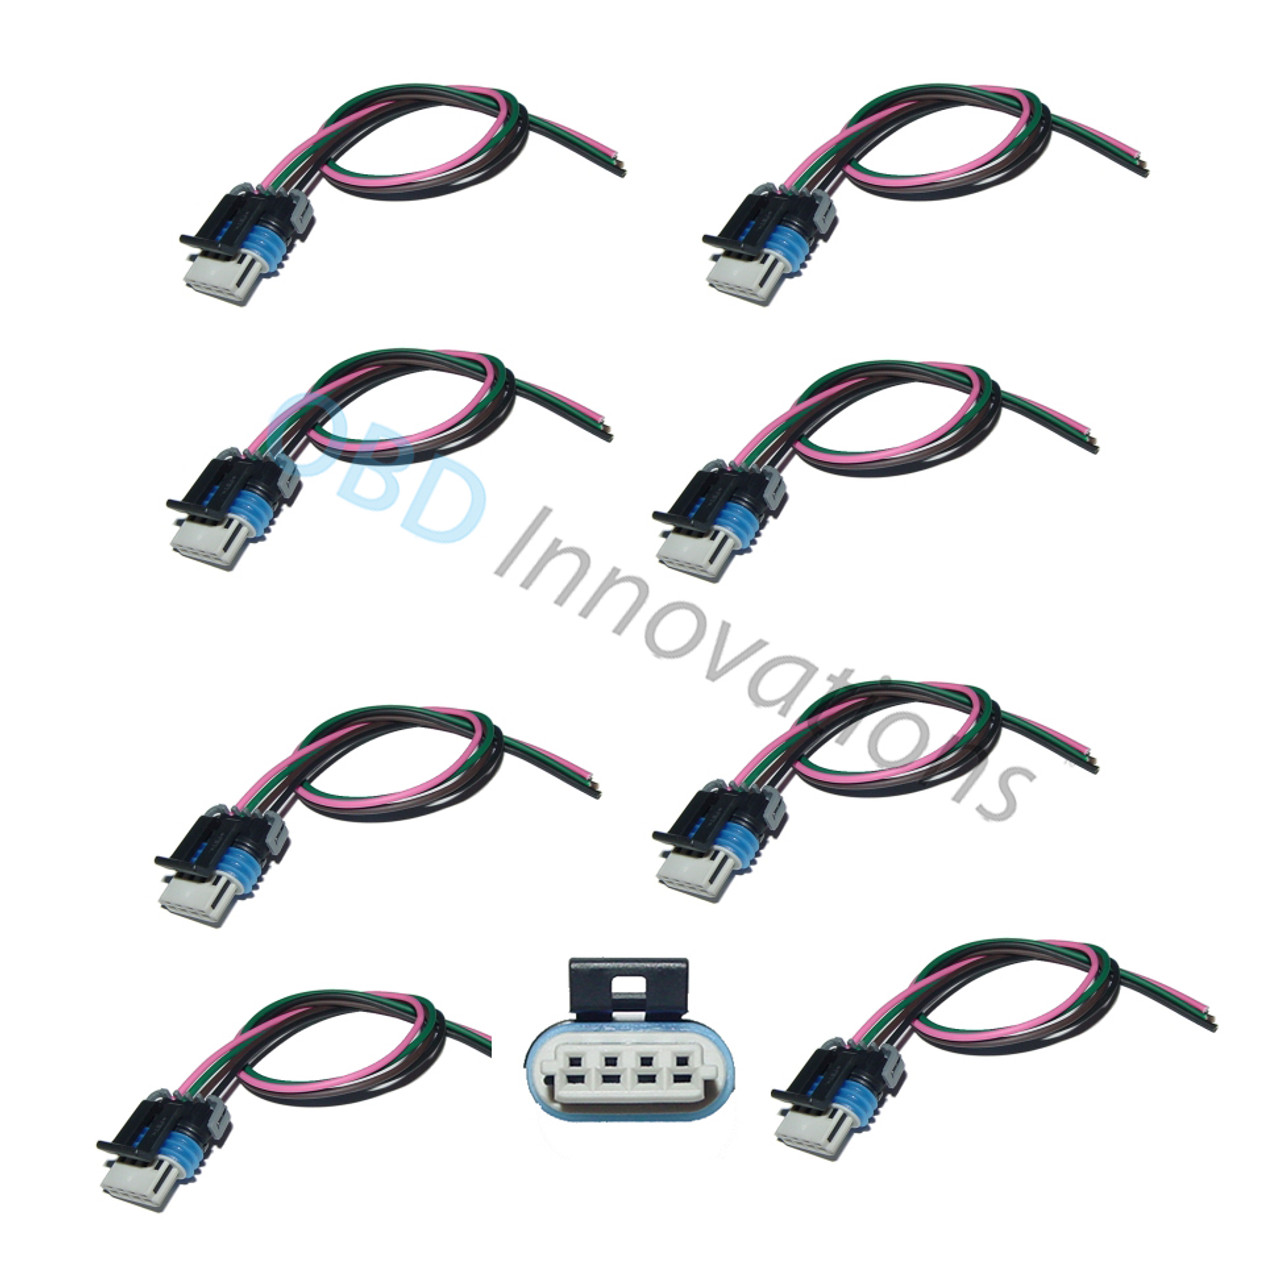 hight resolution of 8x ignition coil pack connector pigtail for gm ls2 ls3 ls7 obd innovations